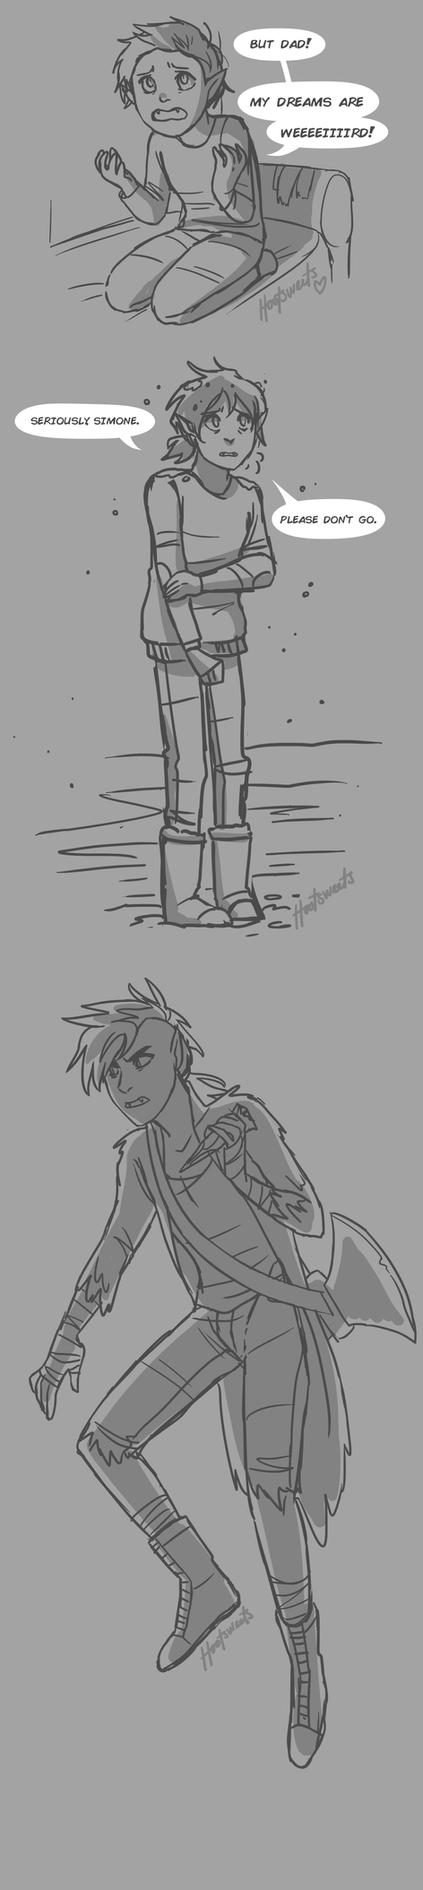 AT Spoilers (kinda) Stakes Sketches by Hootsweets